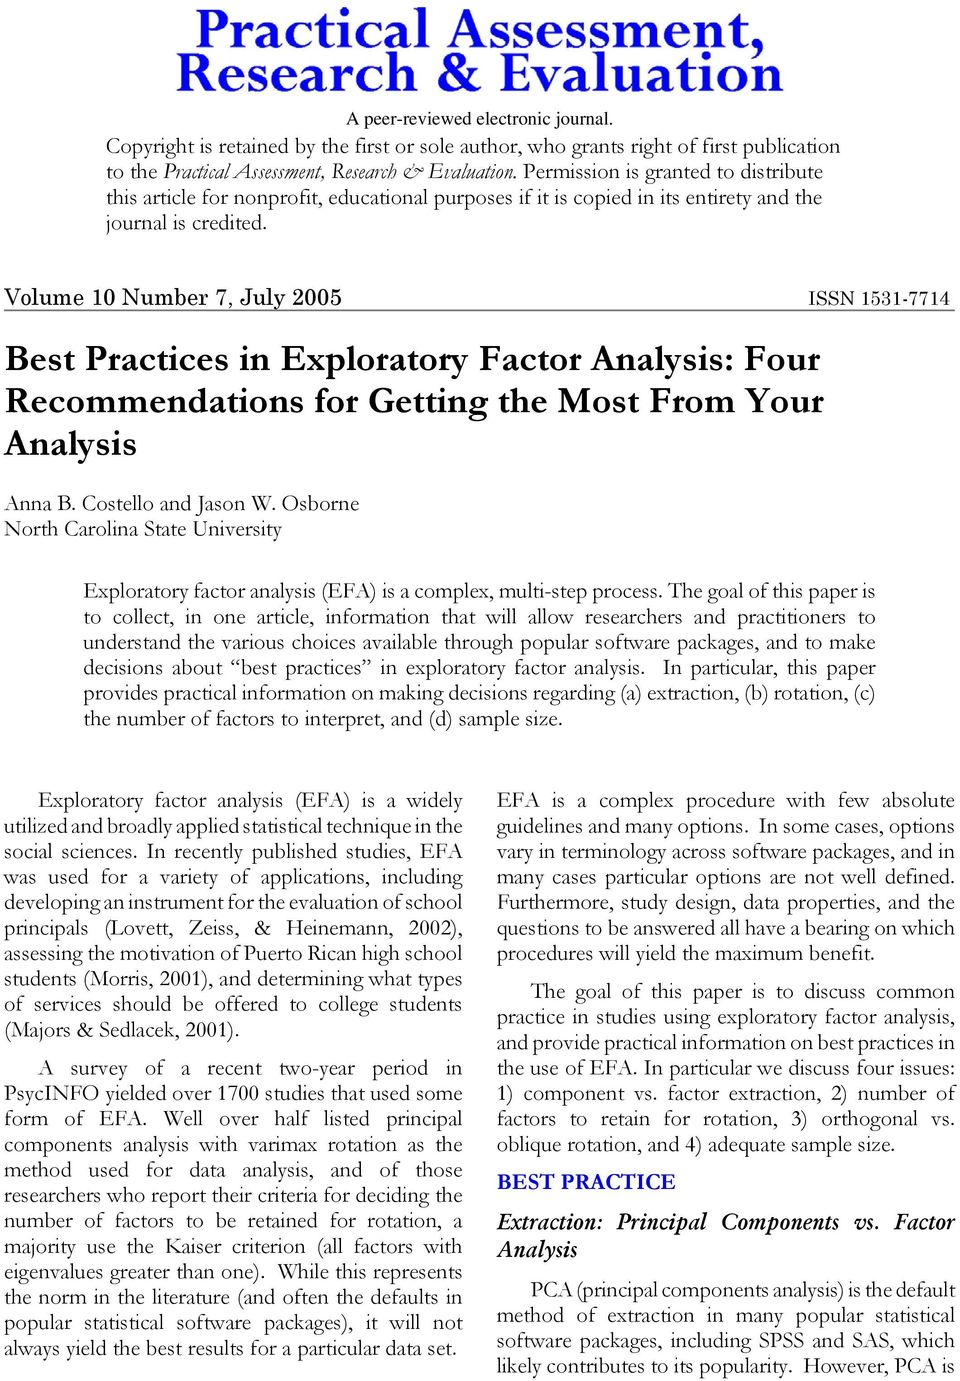 Volume 10 Number 7, July 2005 ISSN 1531-7714 Best Practices in Exploratory Factor Analysis: Four Recommendations for Getting the Most From Your Analysis Anna B. Costello and Jason W.